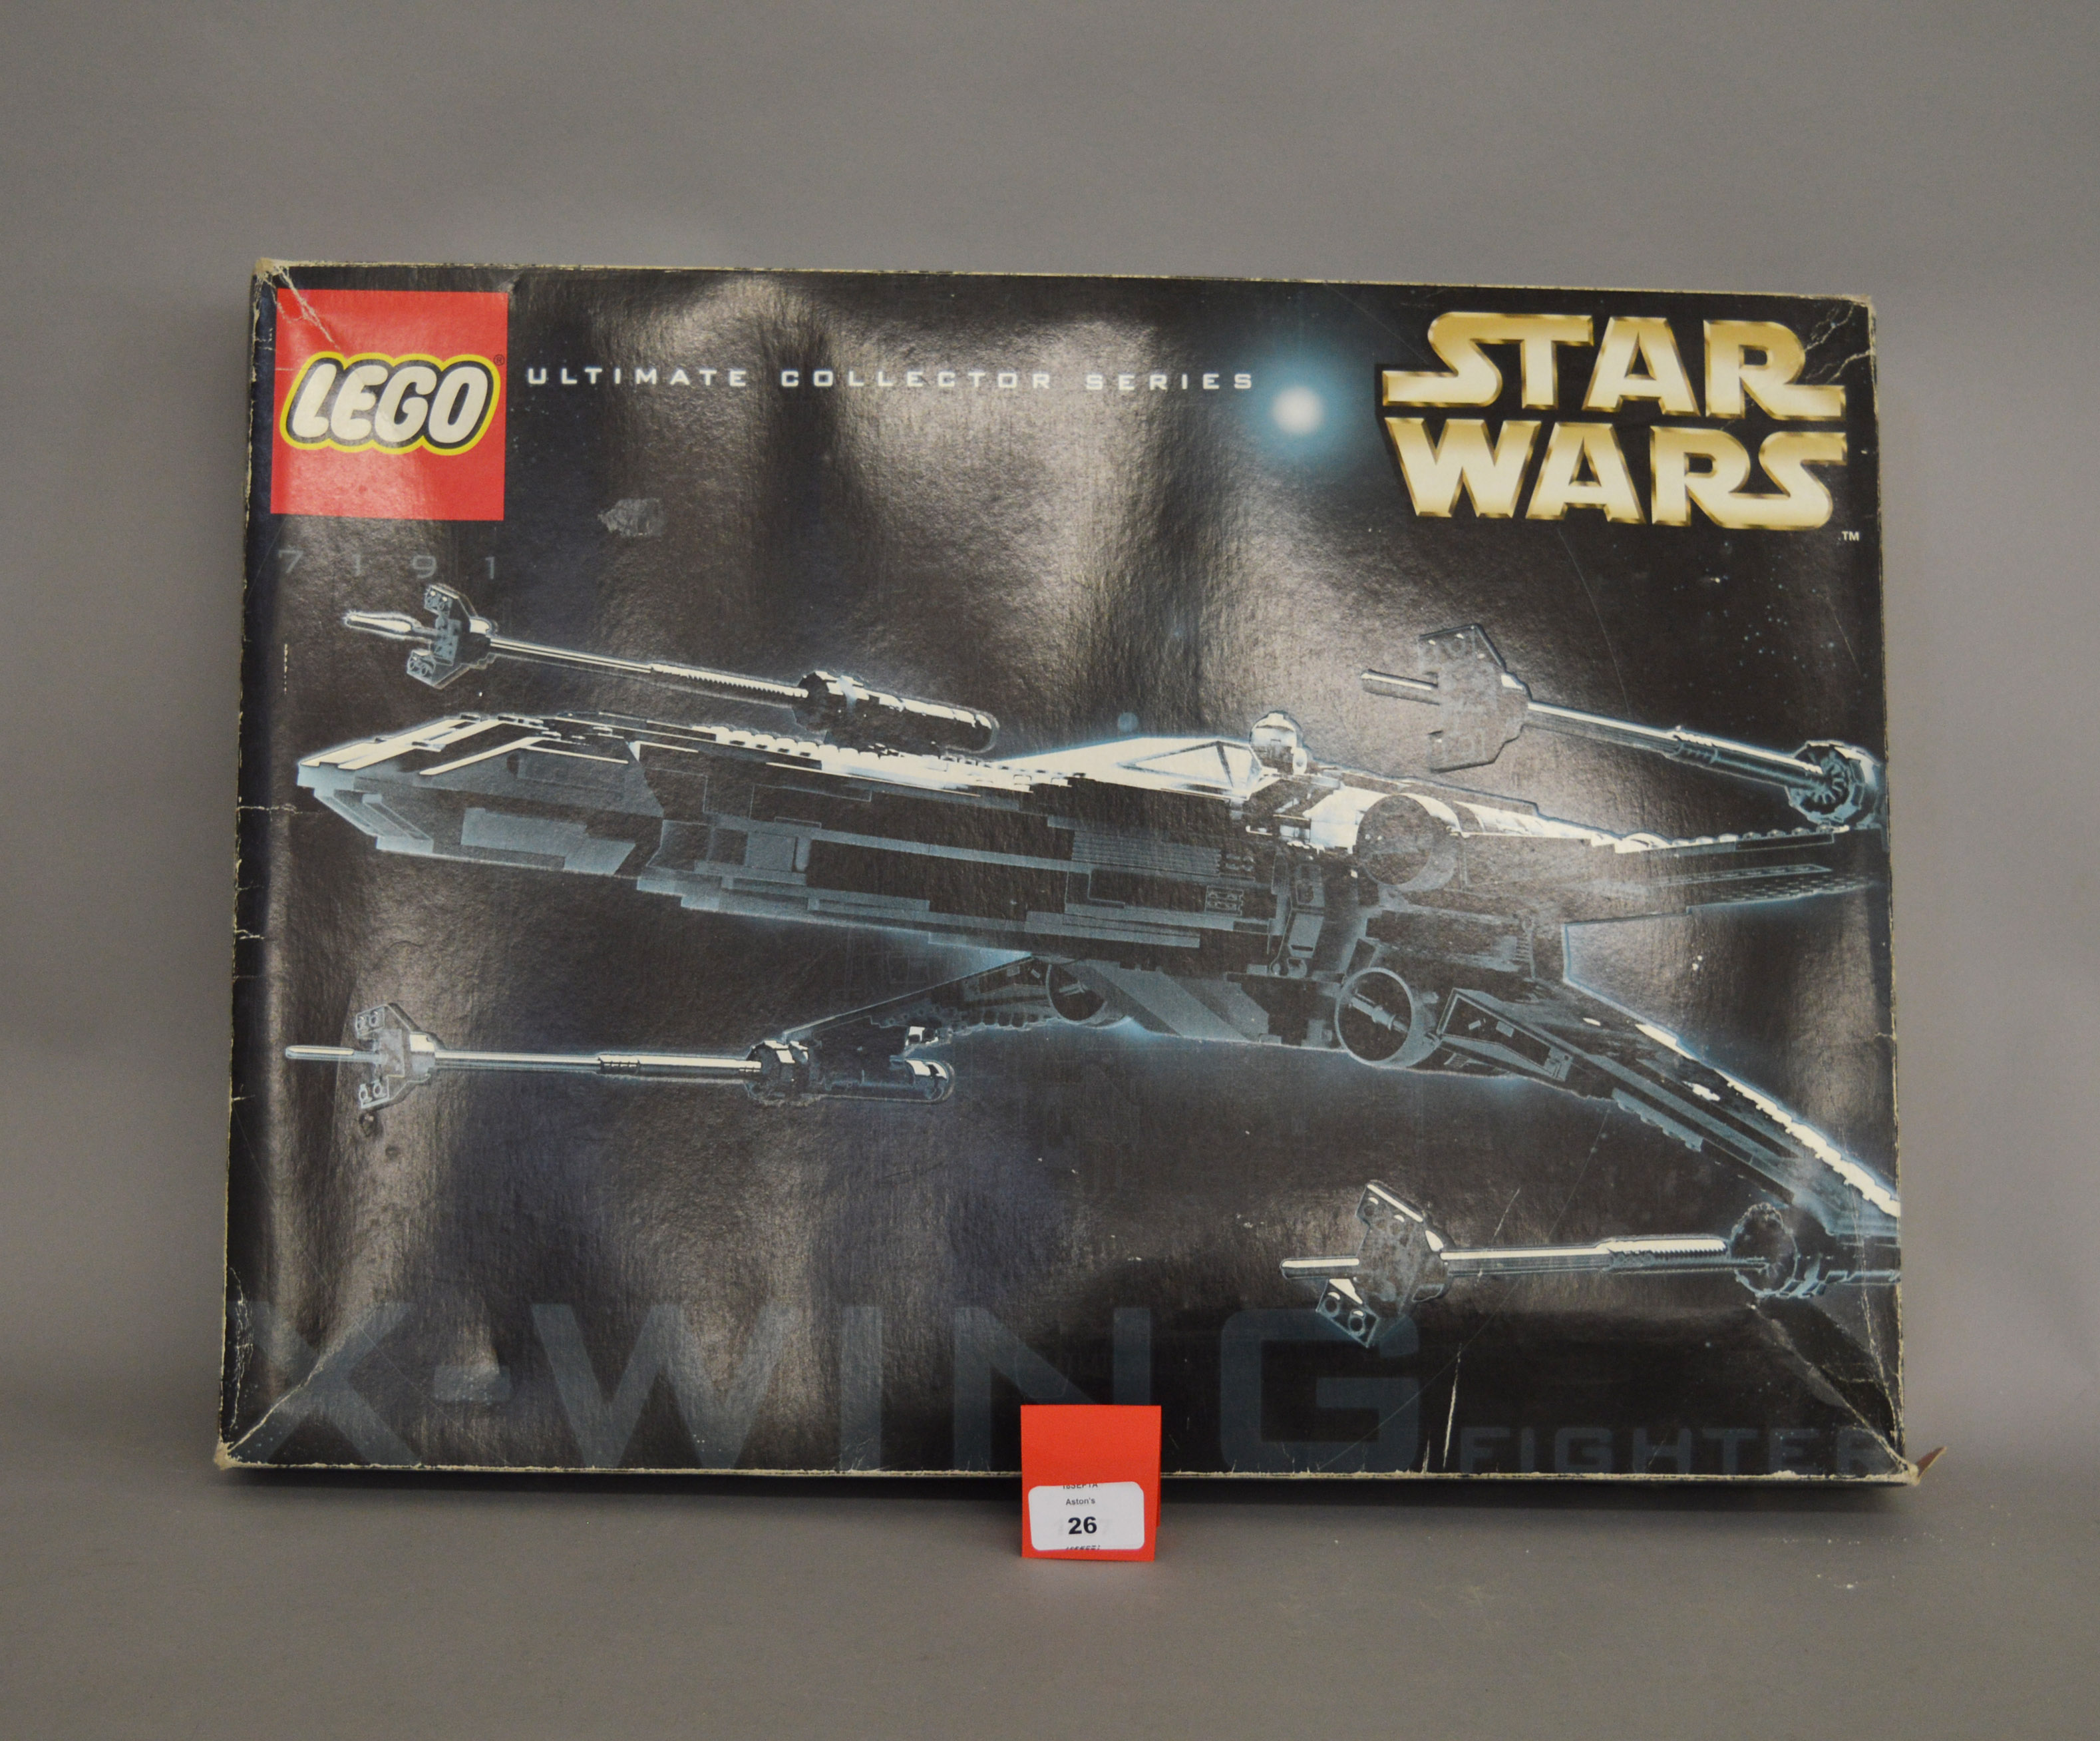 Lot 26 - Lego 7191 Ultimate Collector Series X-wing Fighter. Boxed, unchecked for completeness.